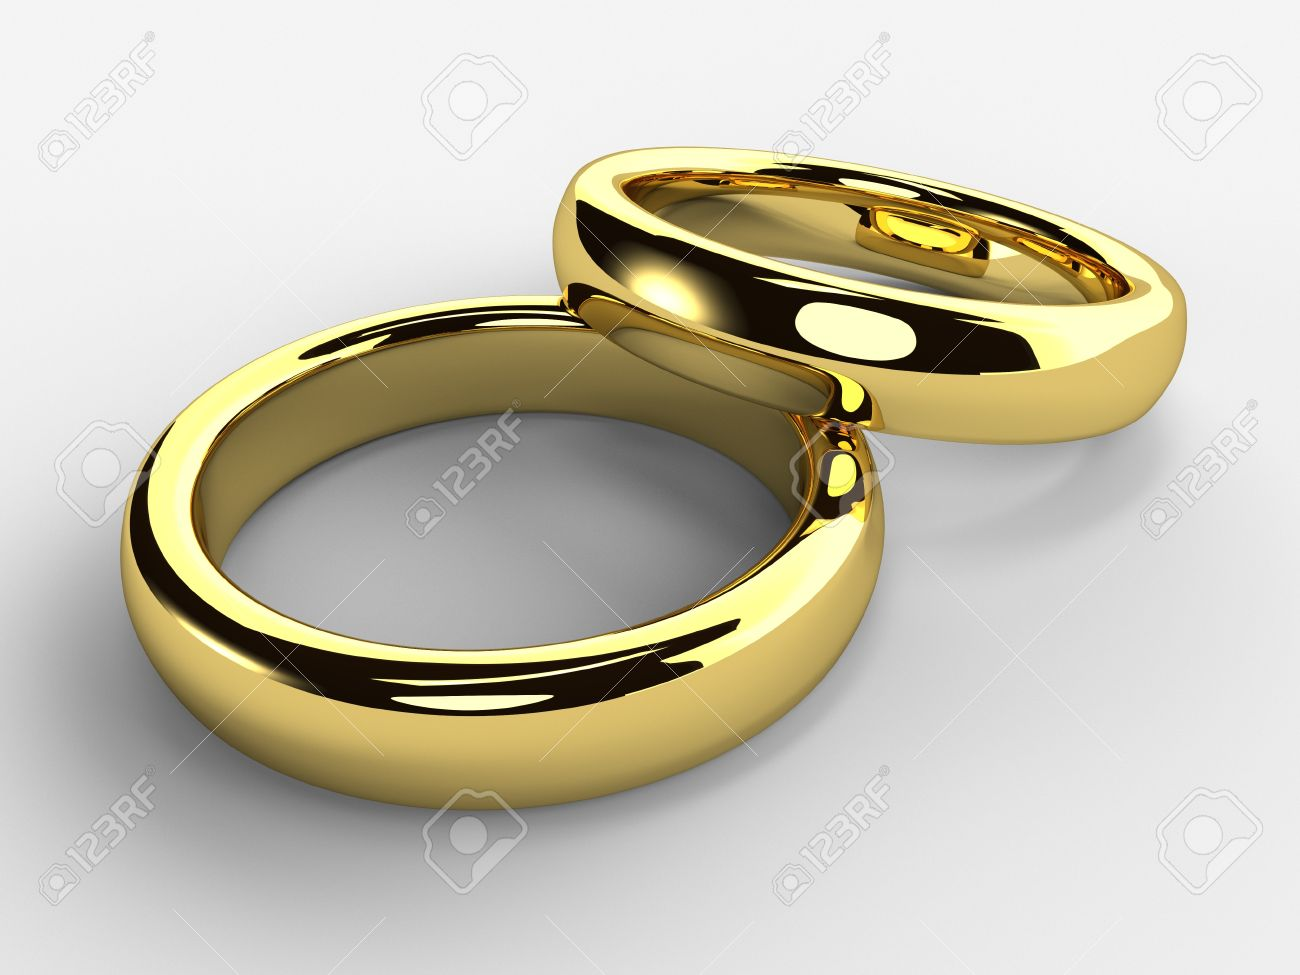 A Render Of Isolated Golden Wedding Rings One Each Other Stock Photo